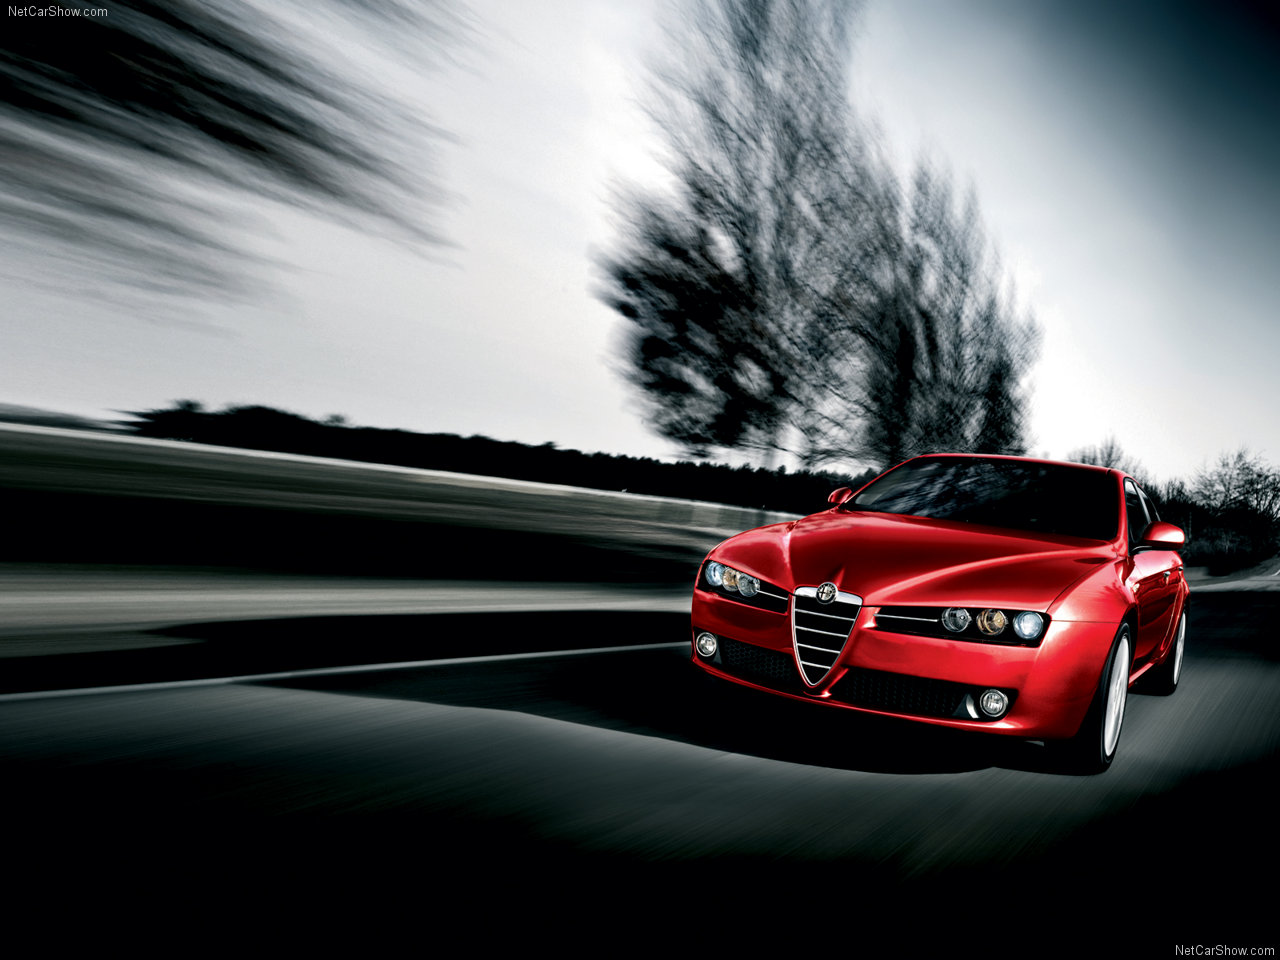 Alfa Romeo Cars Hd Wallpapers Carros Lindos Wallpaper Image For Pc Wallpaper